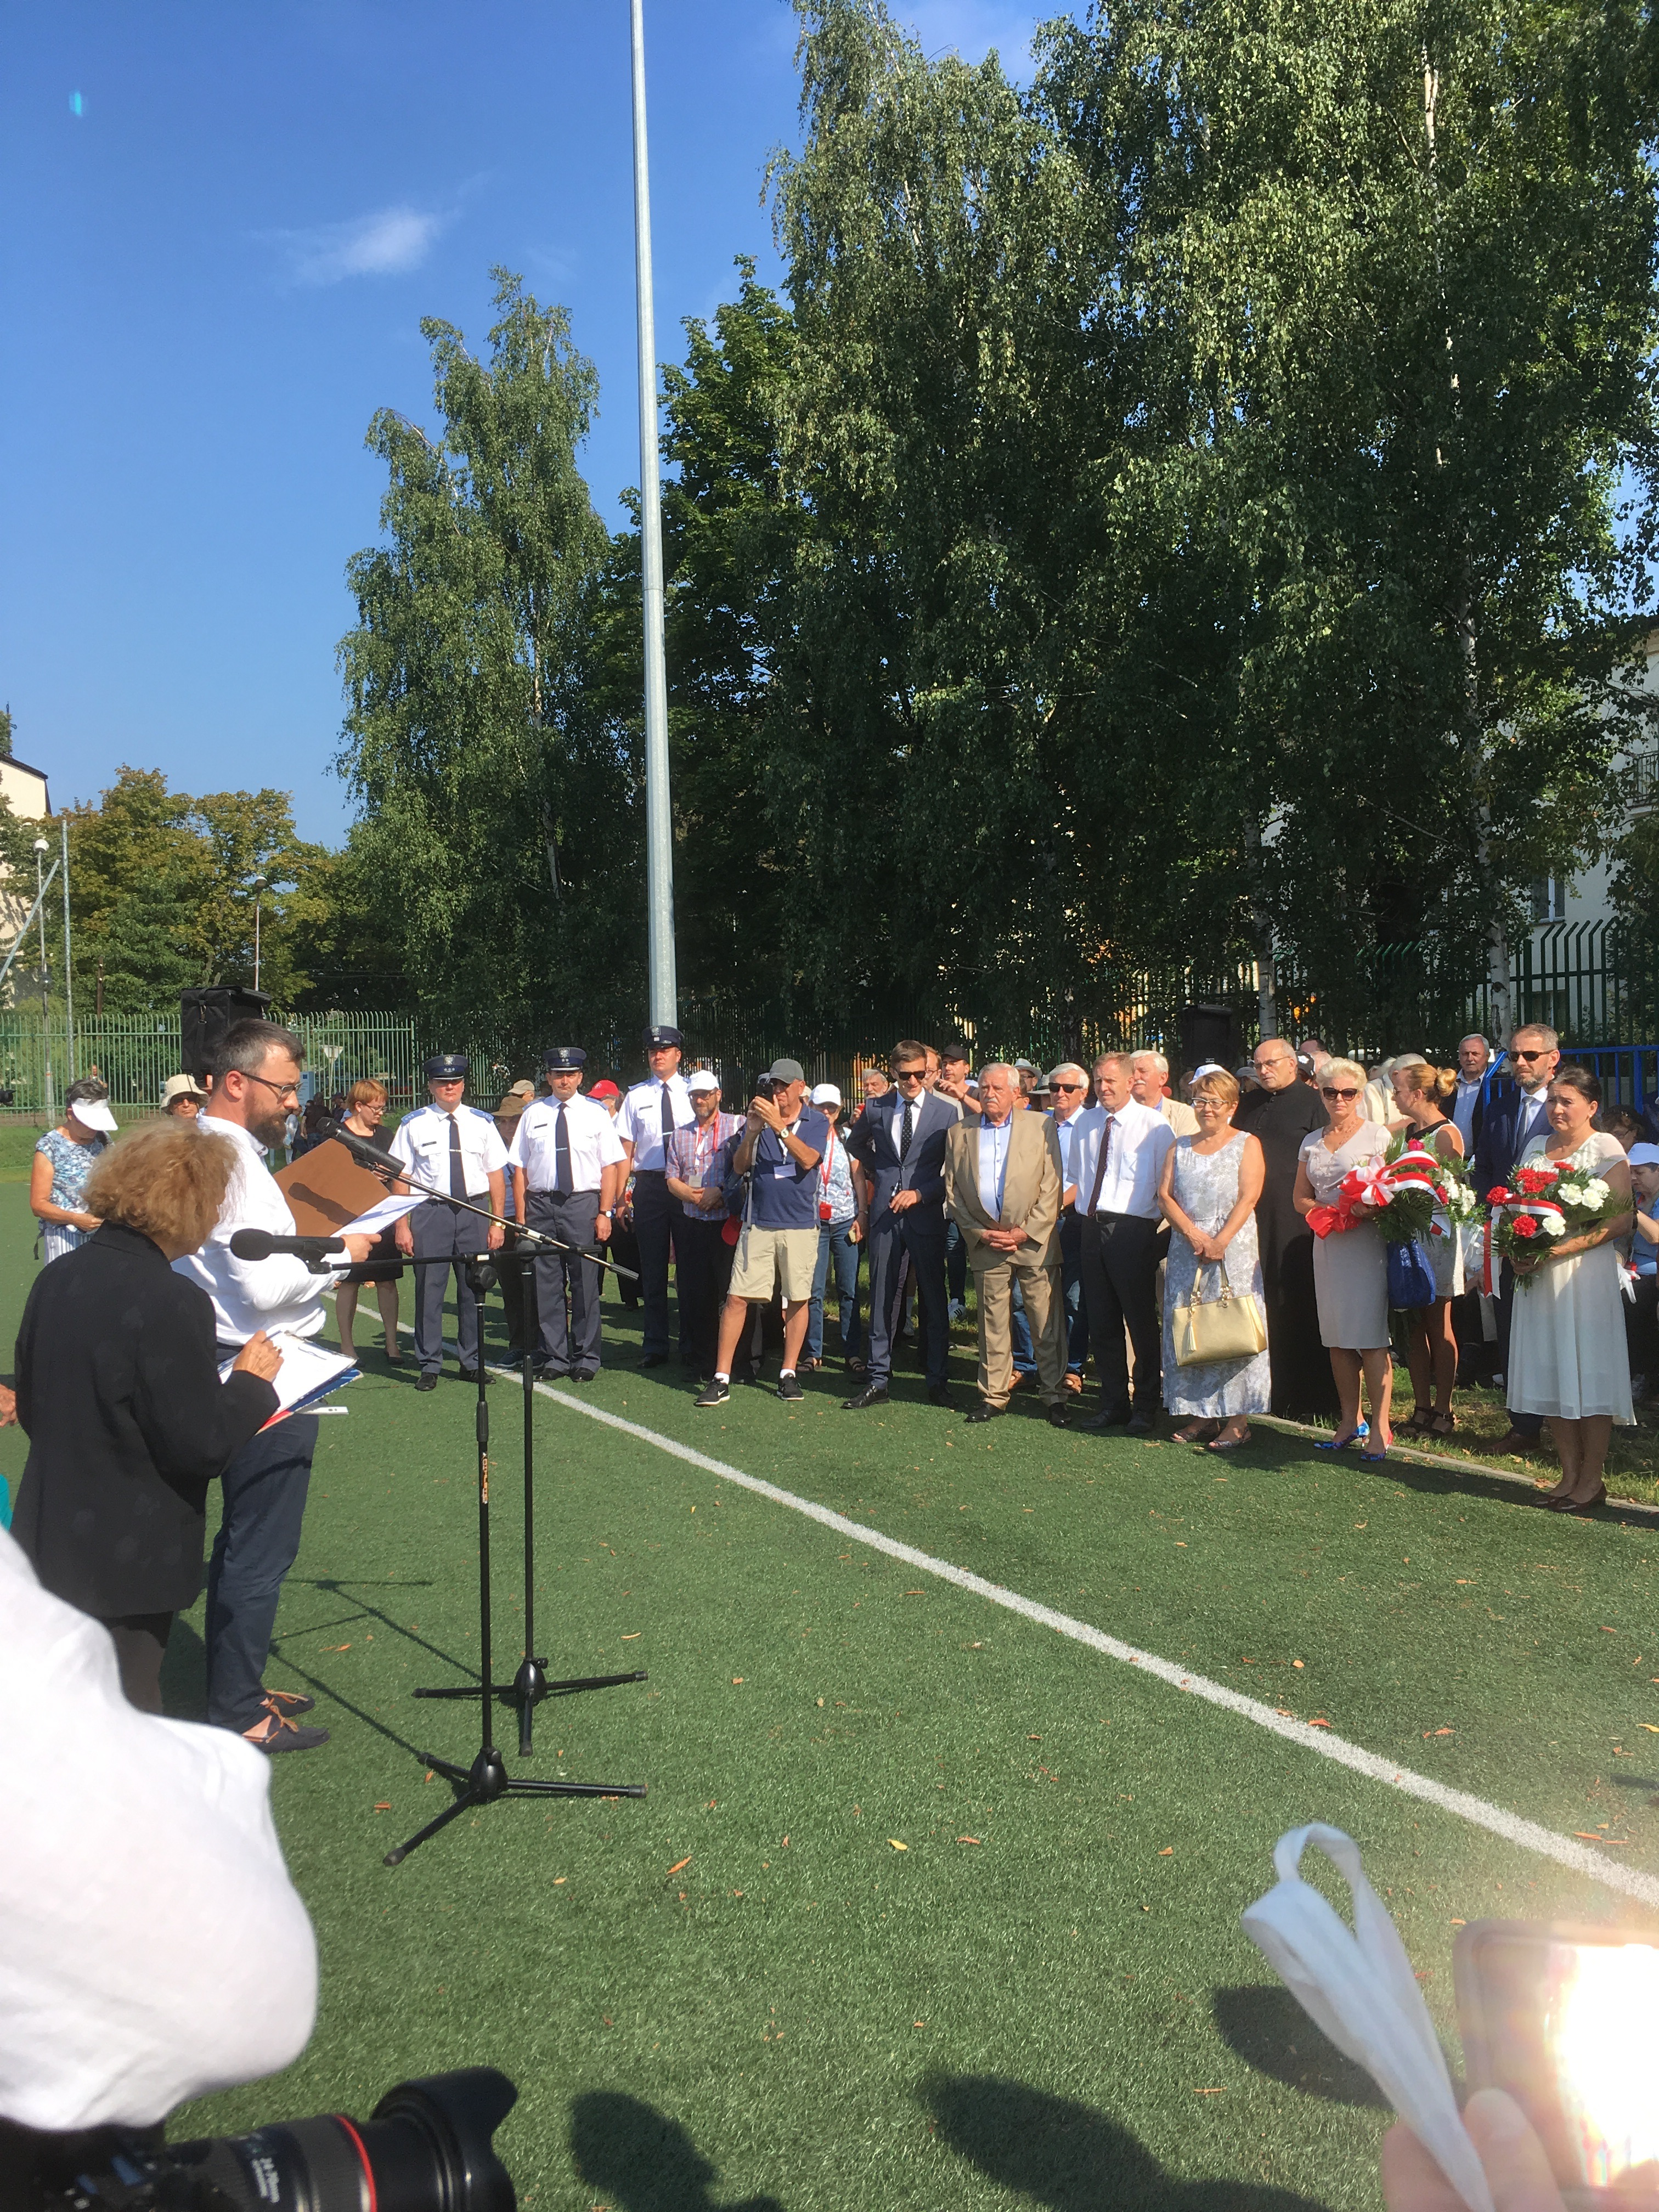 Fig 1 Sosnowiec ceremony 1 August 2018